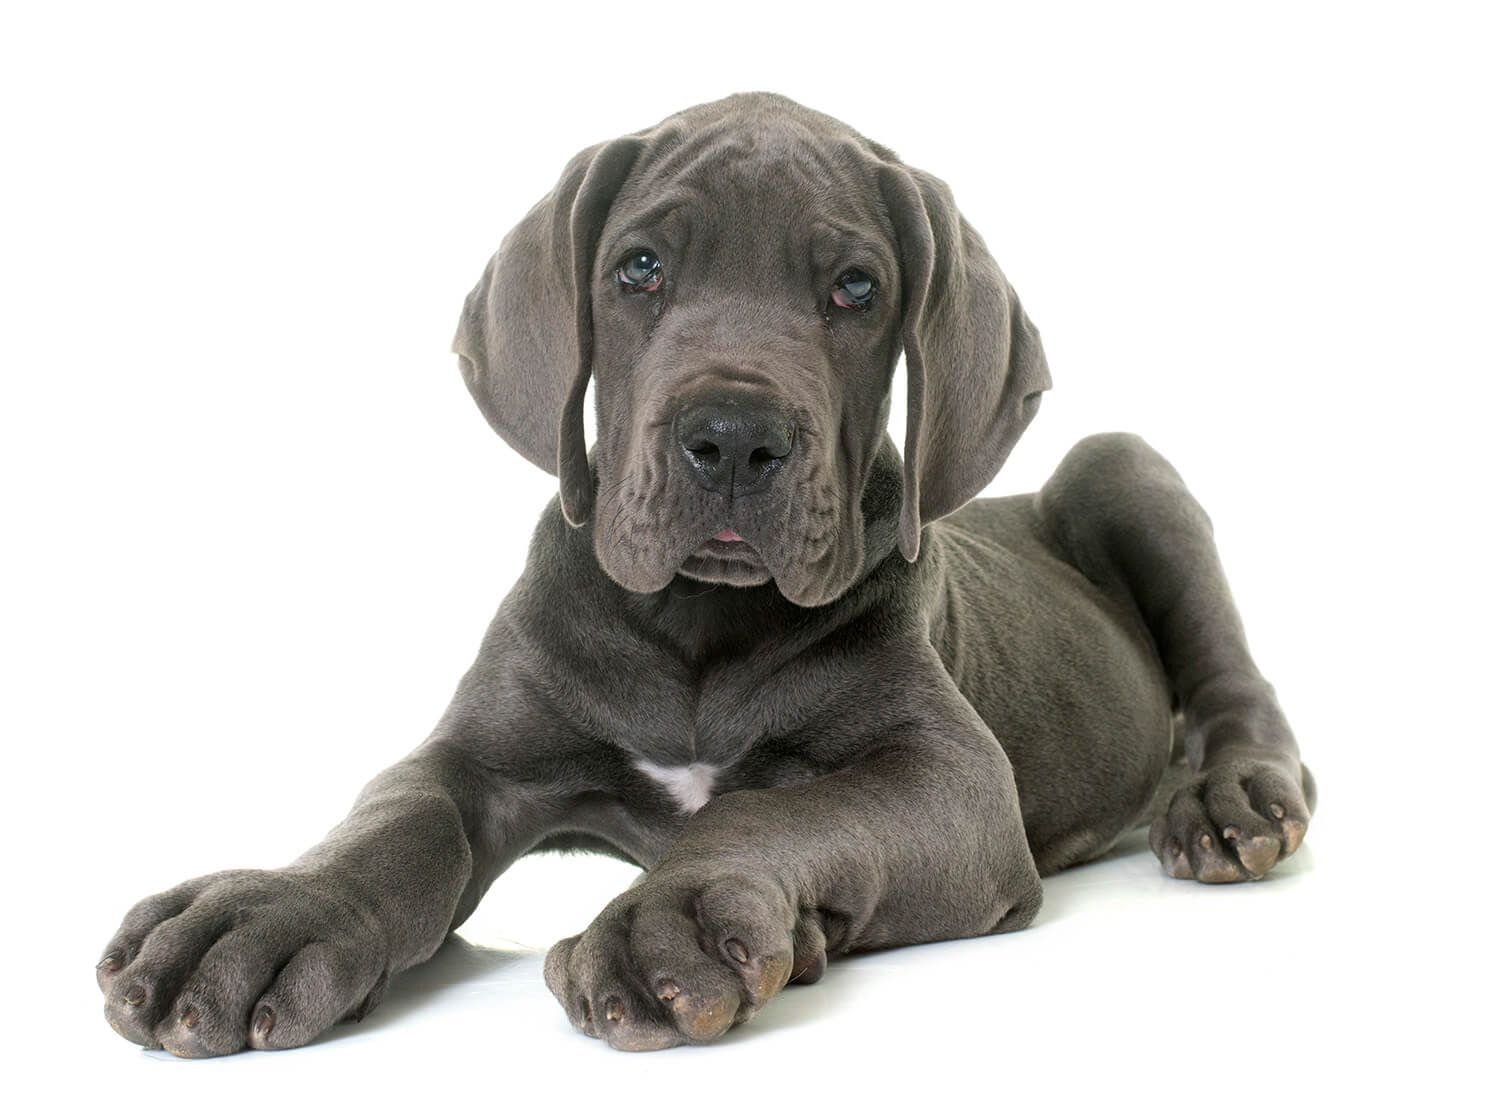 Adorable Great Dane Dane Puppies Great Dane Puppy Relaxed Dog